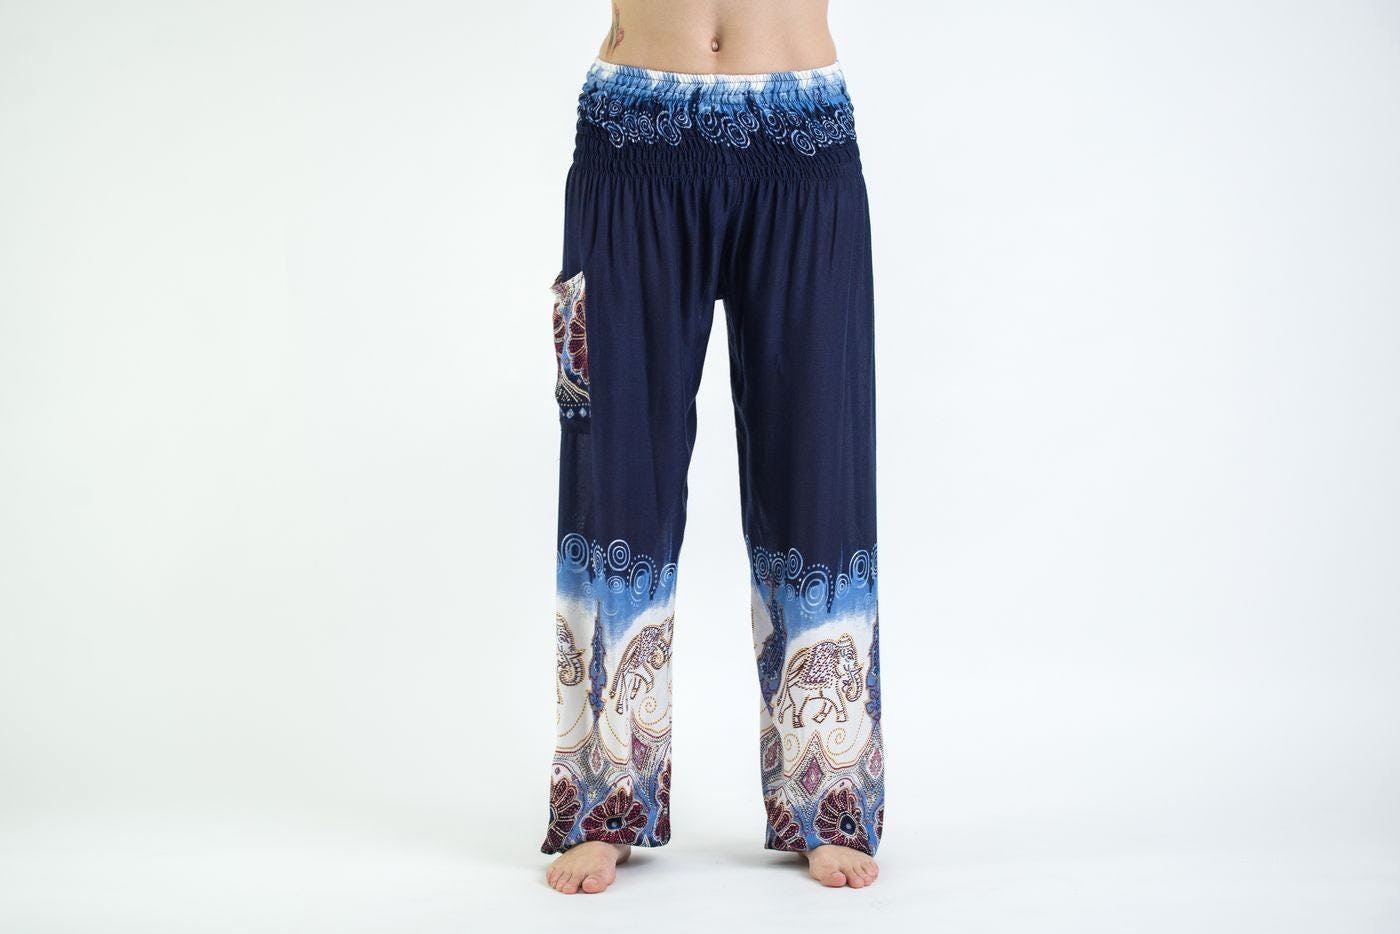 Creative Traditionally, This Style Of Pants Is Associated With Ancient Turkey In Many Illustrations Of The Past, Beautiful Women Are Shown Wearing Similar Garments, Performing Dances Or Court Functions The Term Harem Comes From A Turkish And